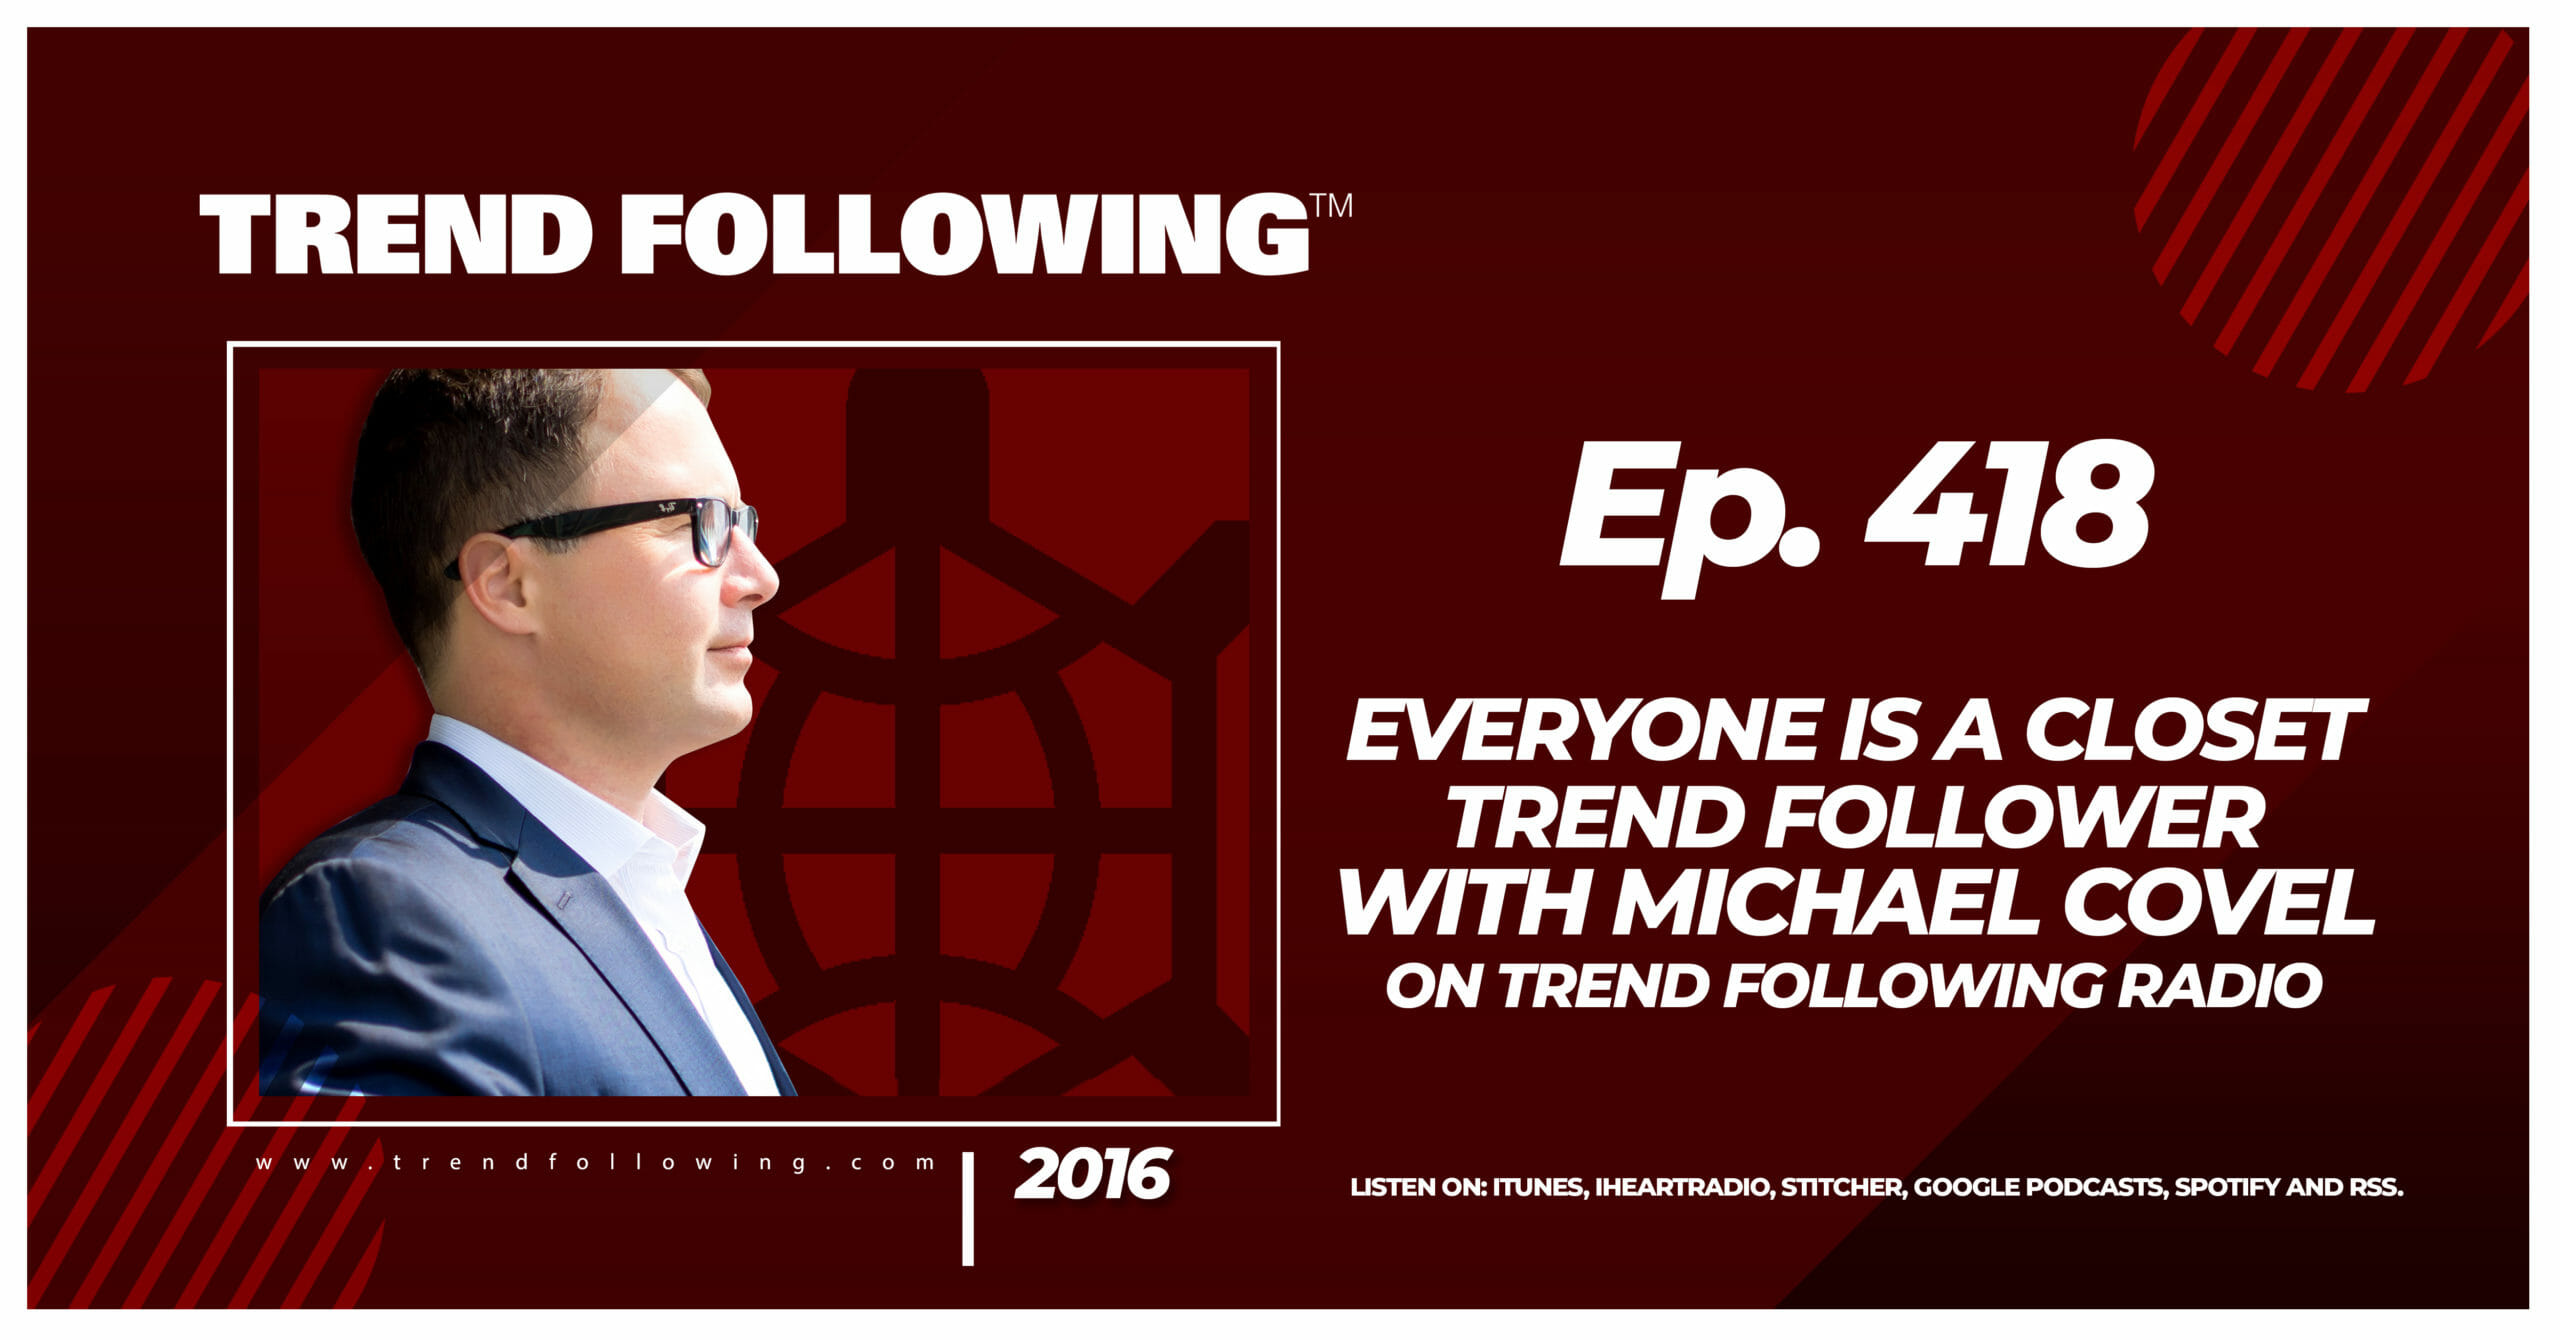 Everyone is a Closet Trend Follower with Michael Covel on Trend Following Radio